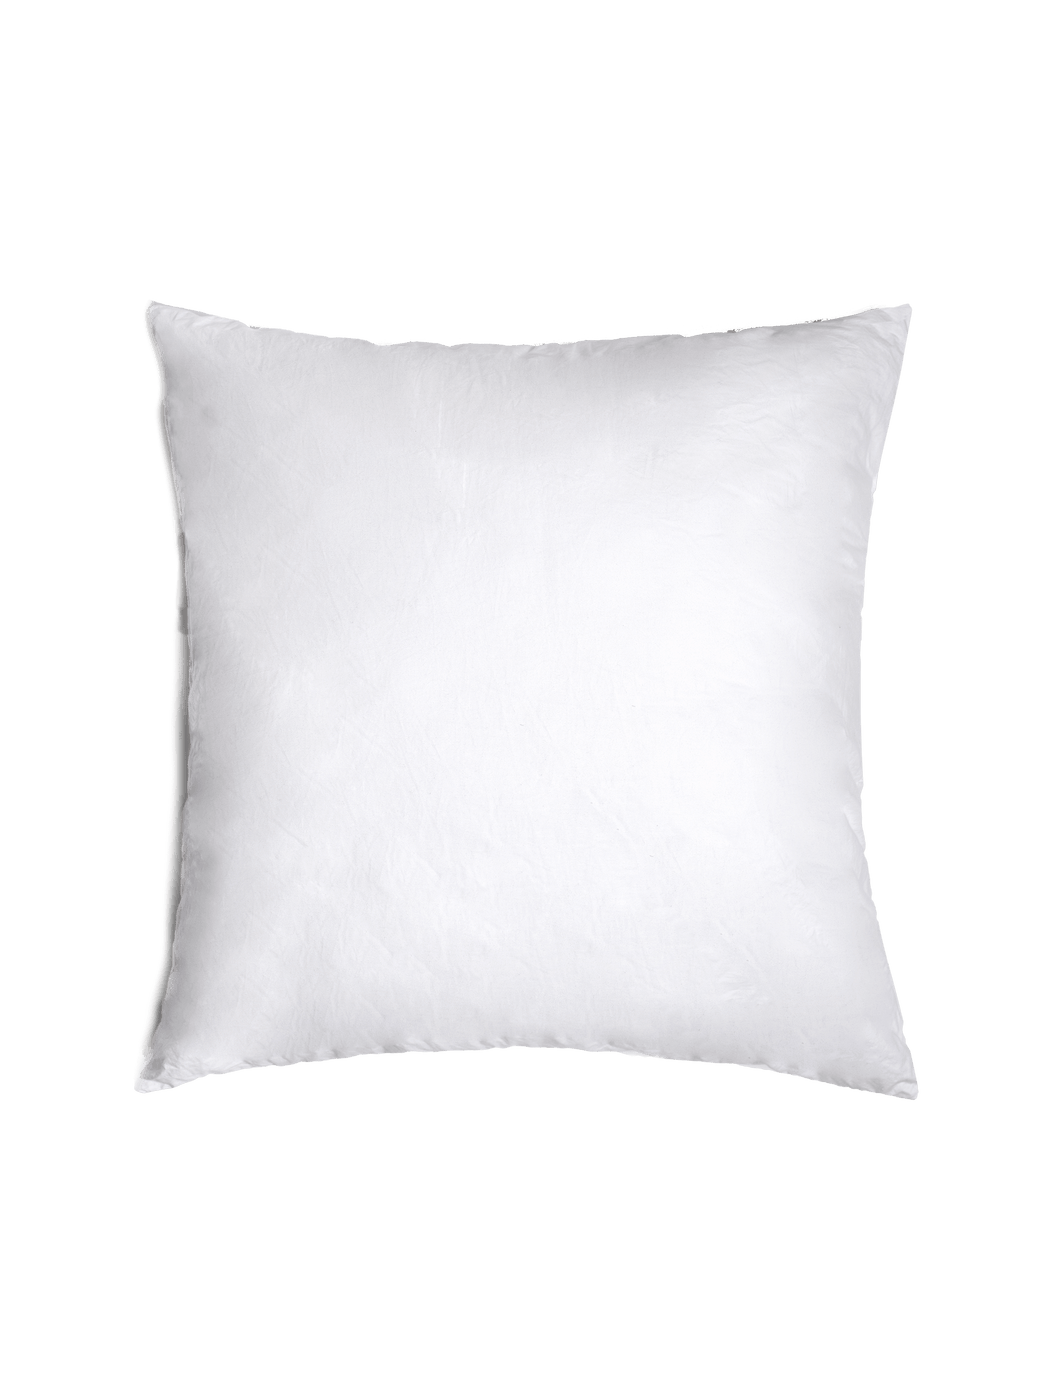 Down Pillow Insert - White